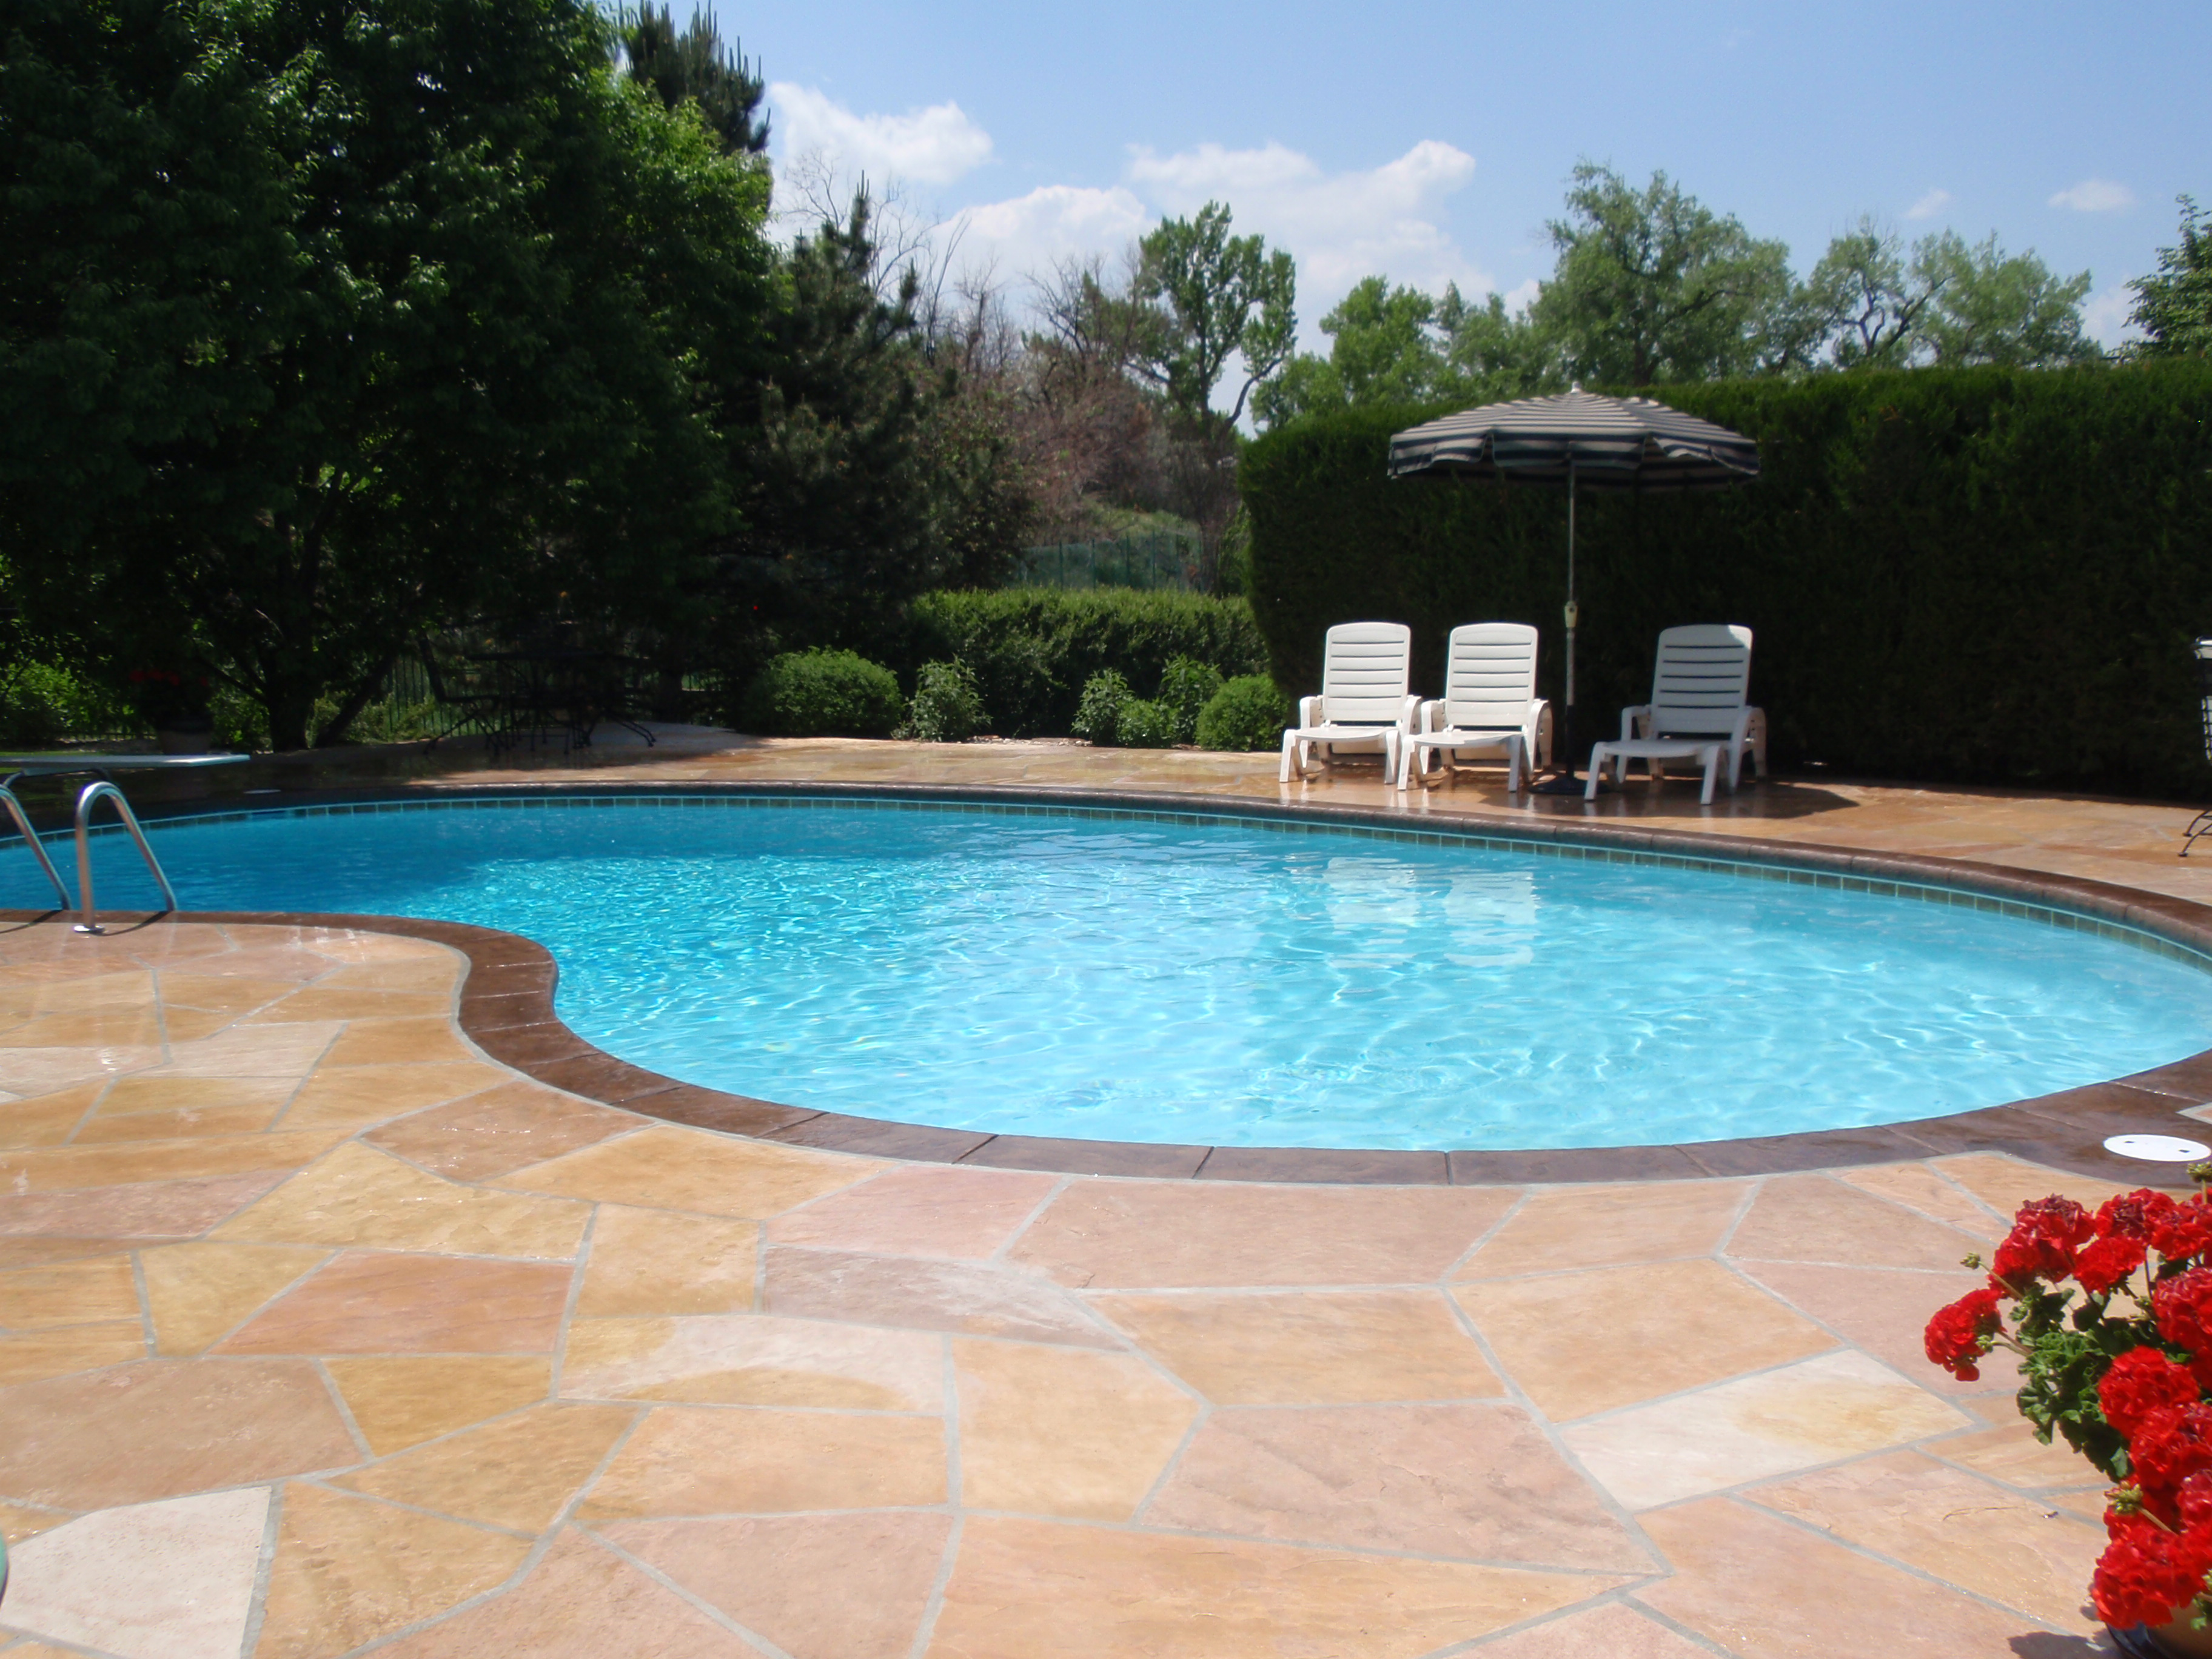 Swimming Pool Refurbish, Greenwood Village CO